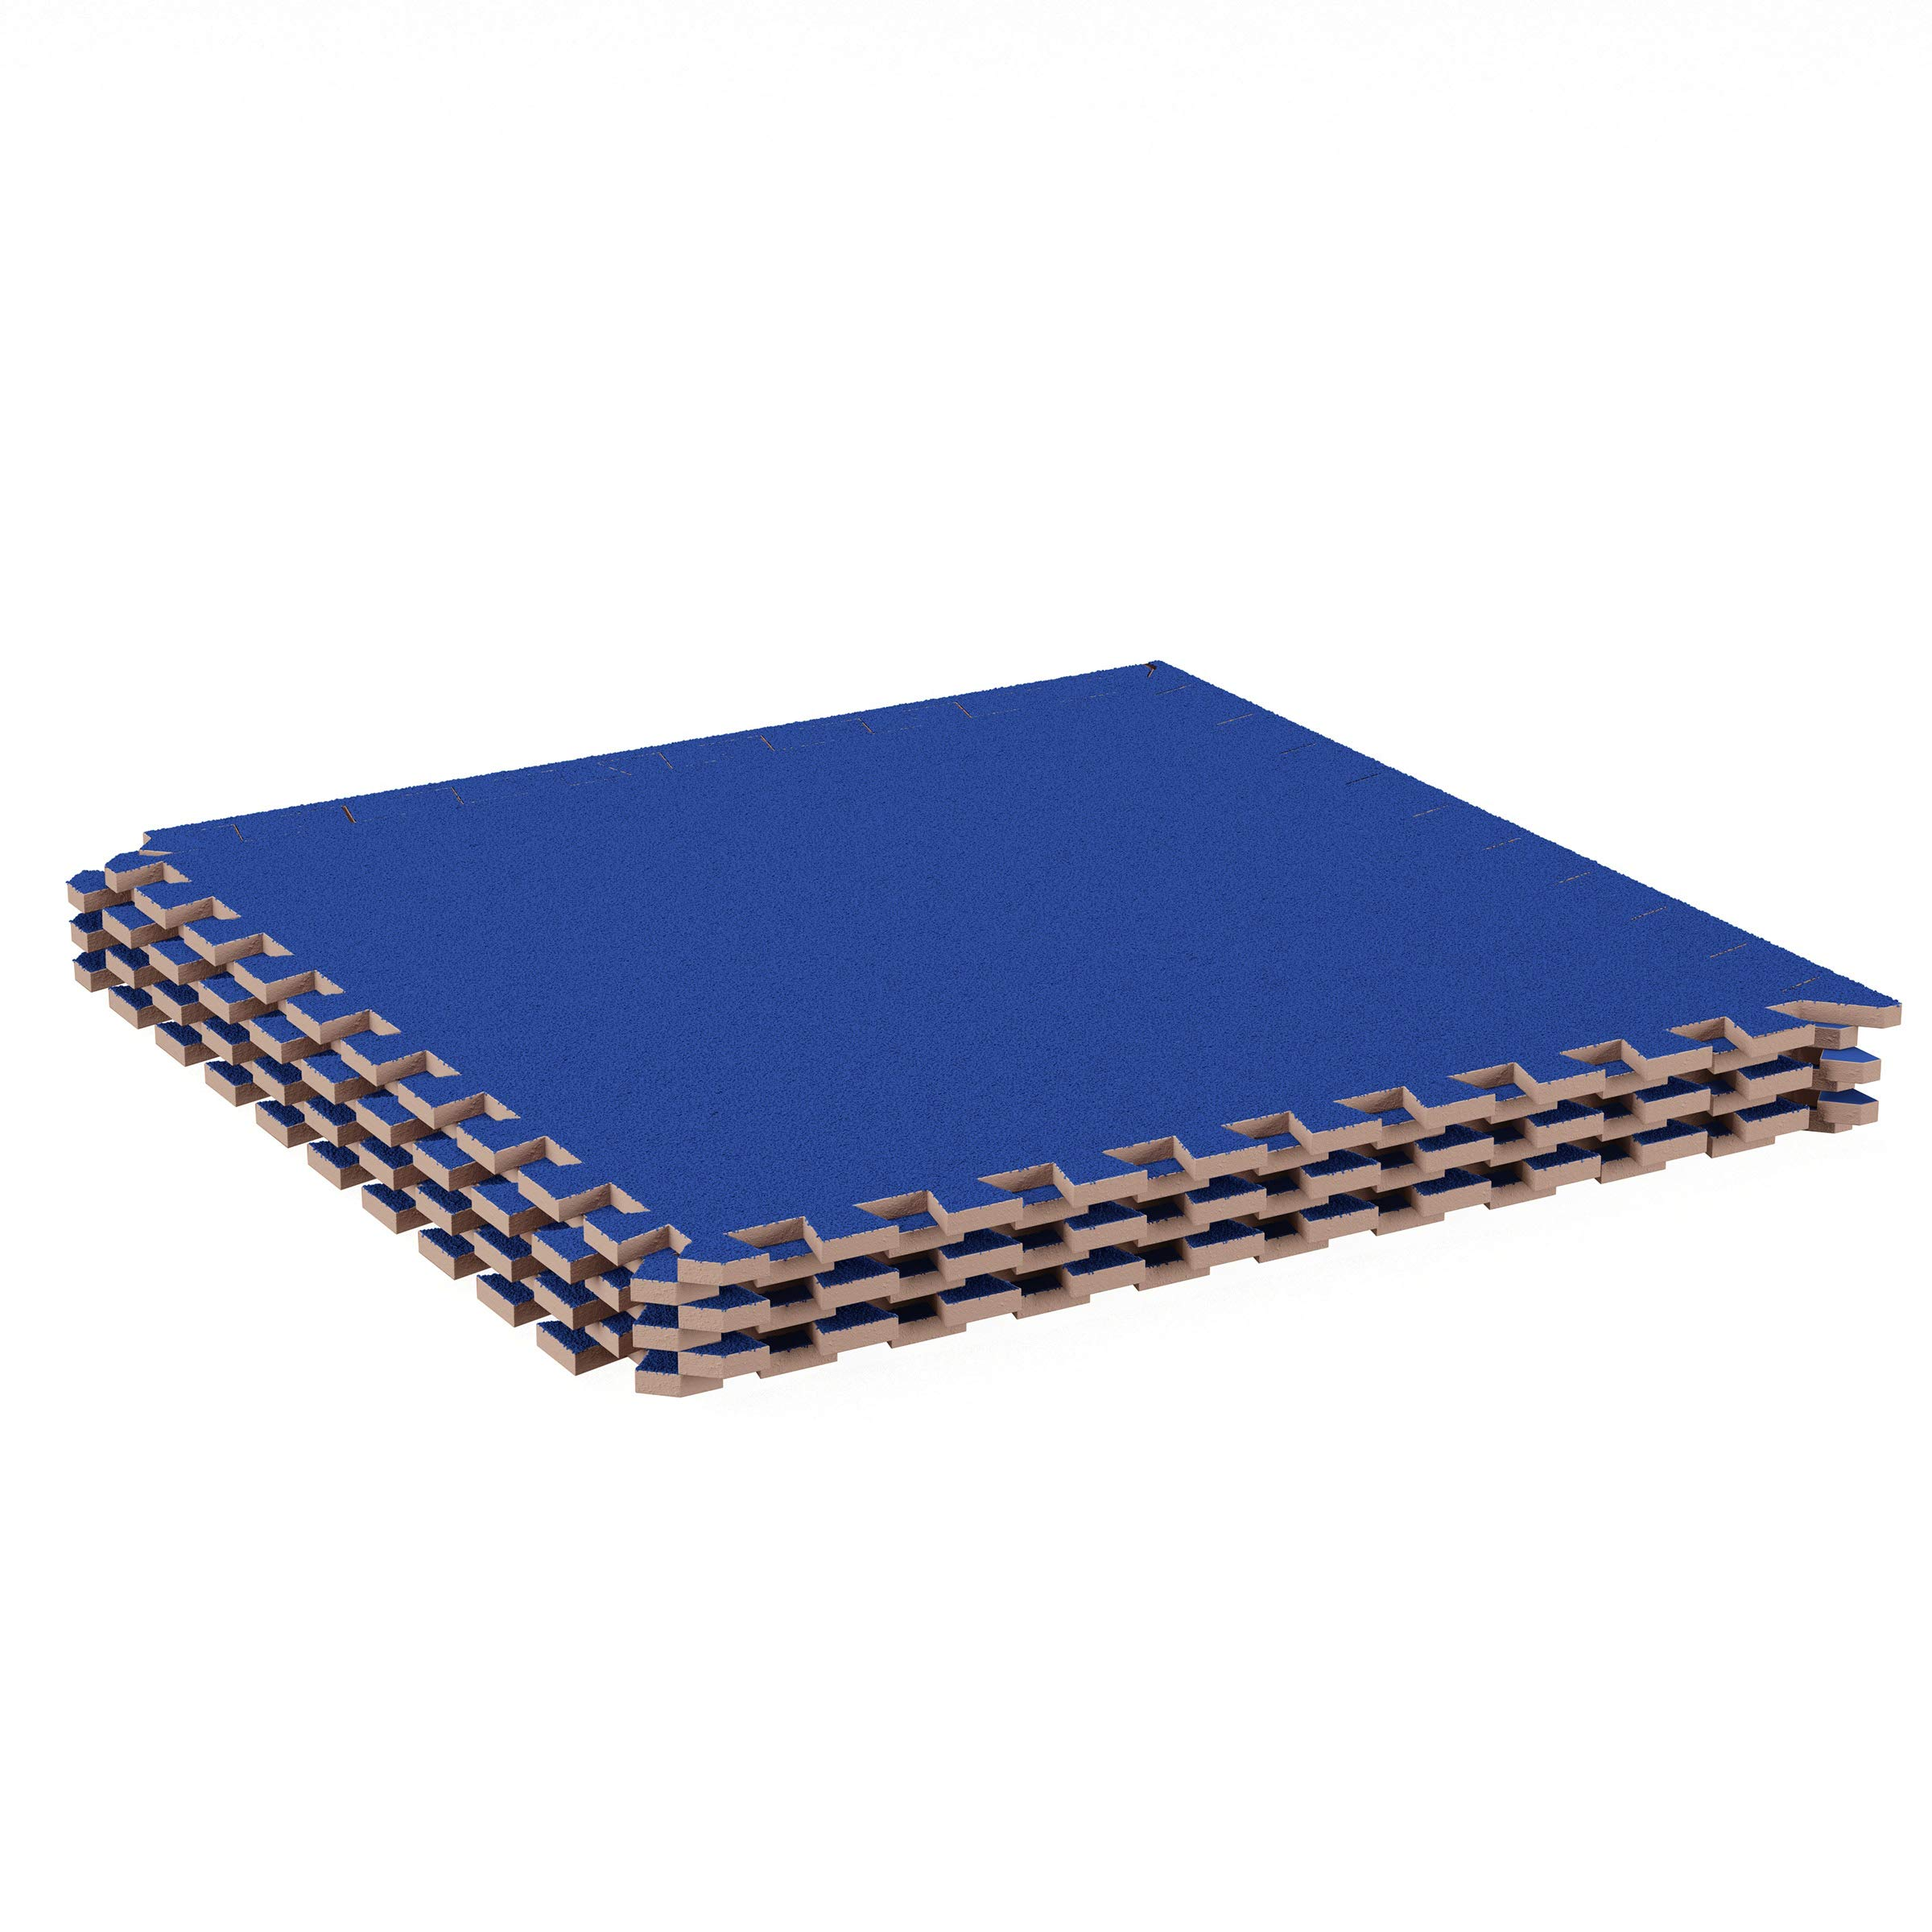 Stalwart Foam Mat Floor Tiles-Interlocking EVA Foam Padding with Soft Carpet Top for Exercise, Yoga, Kids Playroom, Garage, Basement-6PC Set (Blue)